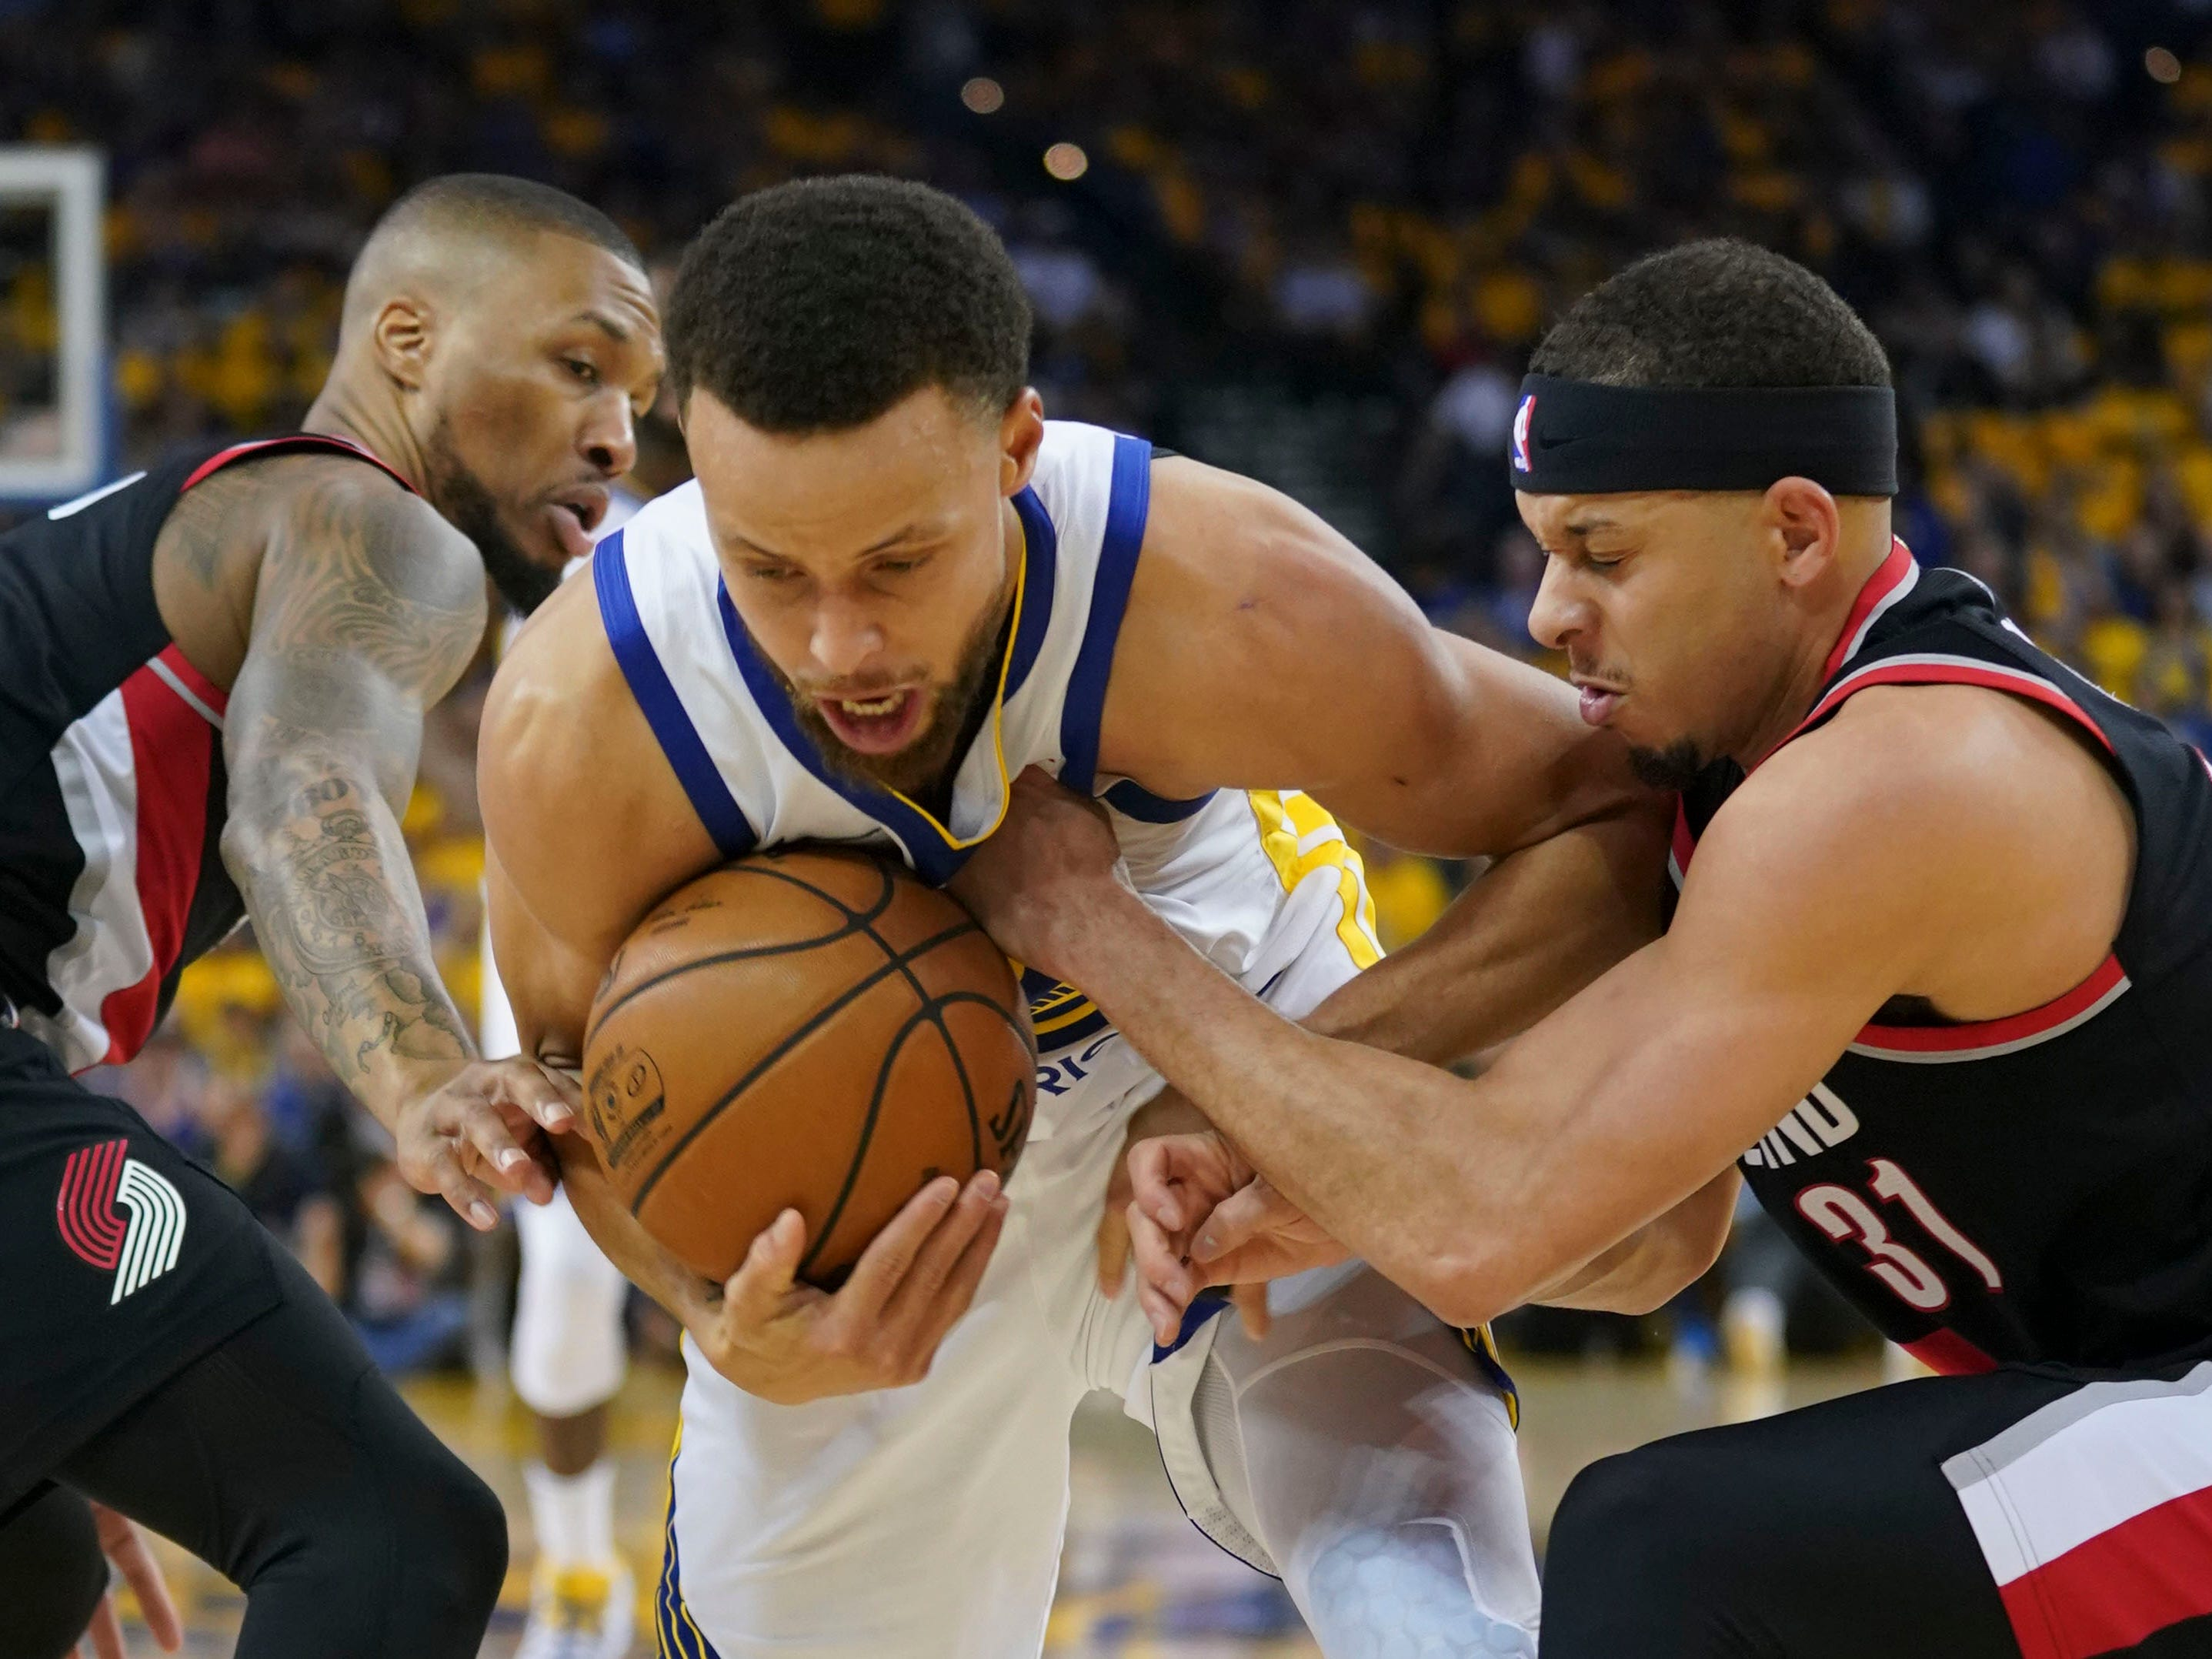 May 14: The Golden State Warriors' Stephen Curry is defended by the Portland Trail Blazers' Damian Lillard (0) and Seth Curry (31) during the second quarter in Game 1 of the Western Conference finals at Oracle Arena. The Warriors won the game, 116-94.